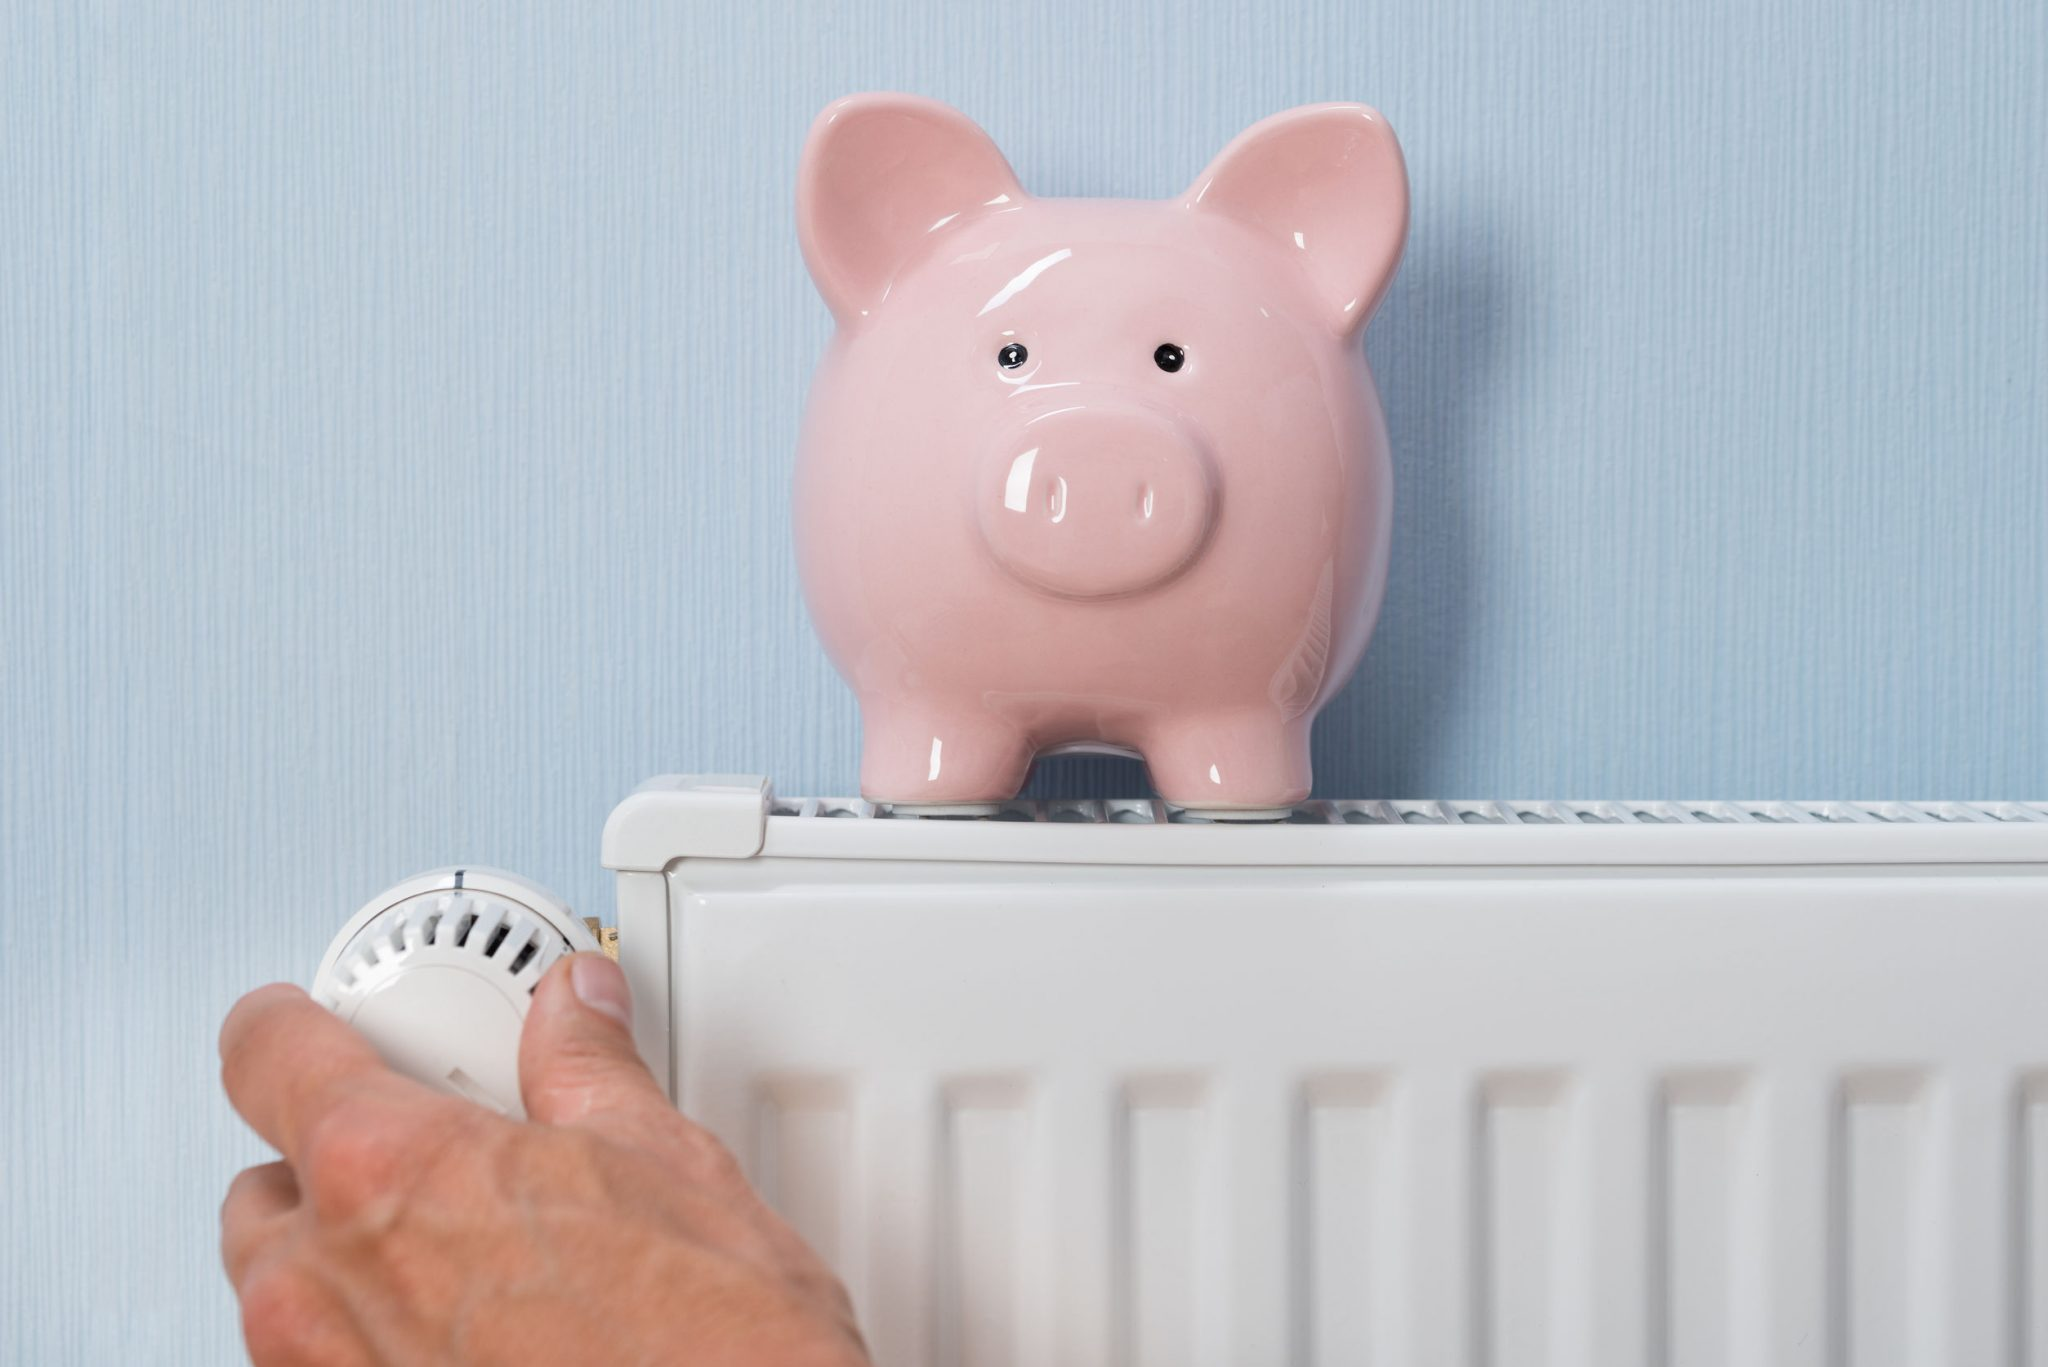 Update your heating system to save money and energy, keep a consistent temperature, and say goodbye to frequent repairs.